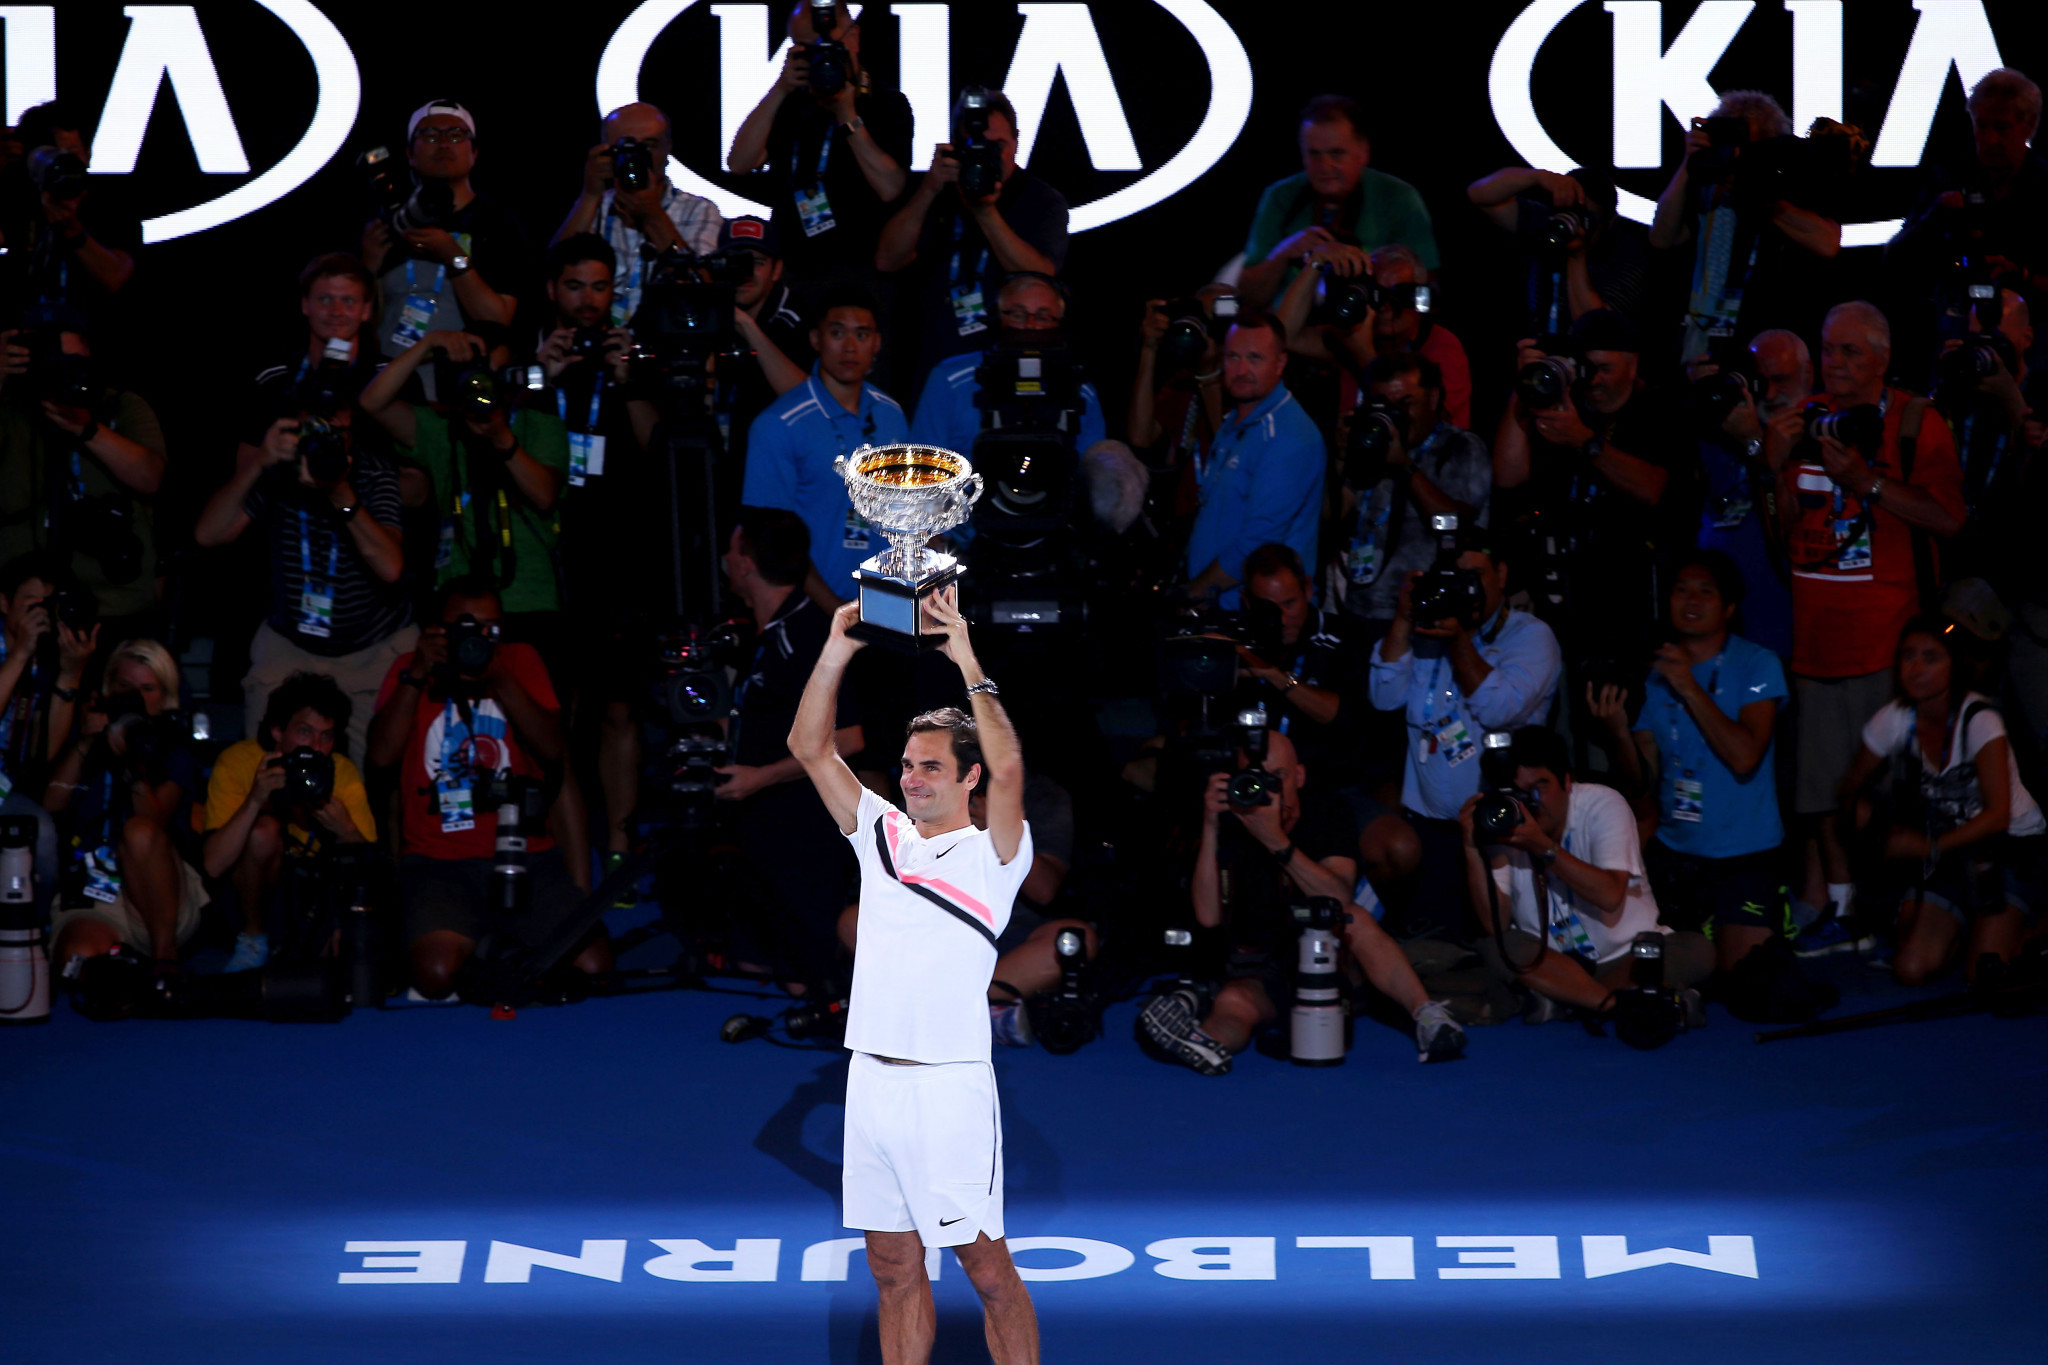 Federer seals 20th Grand Slam title with victory over Cilic in Australian Open final